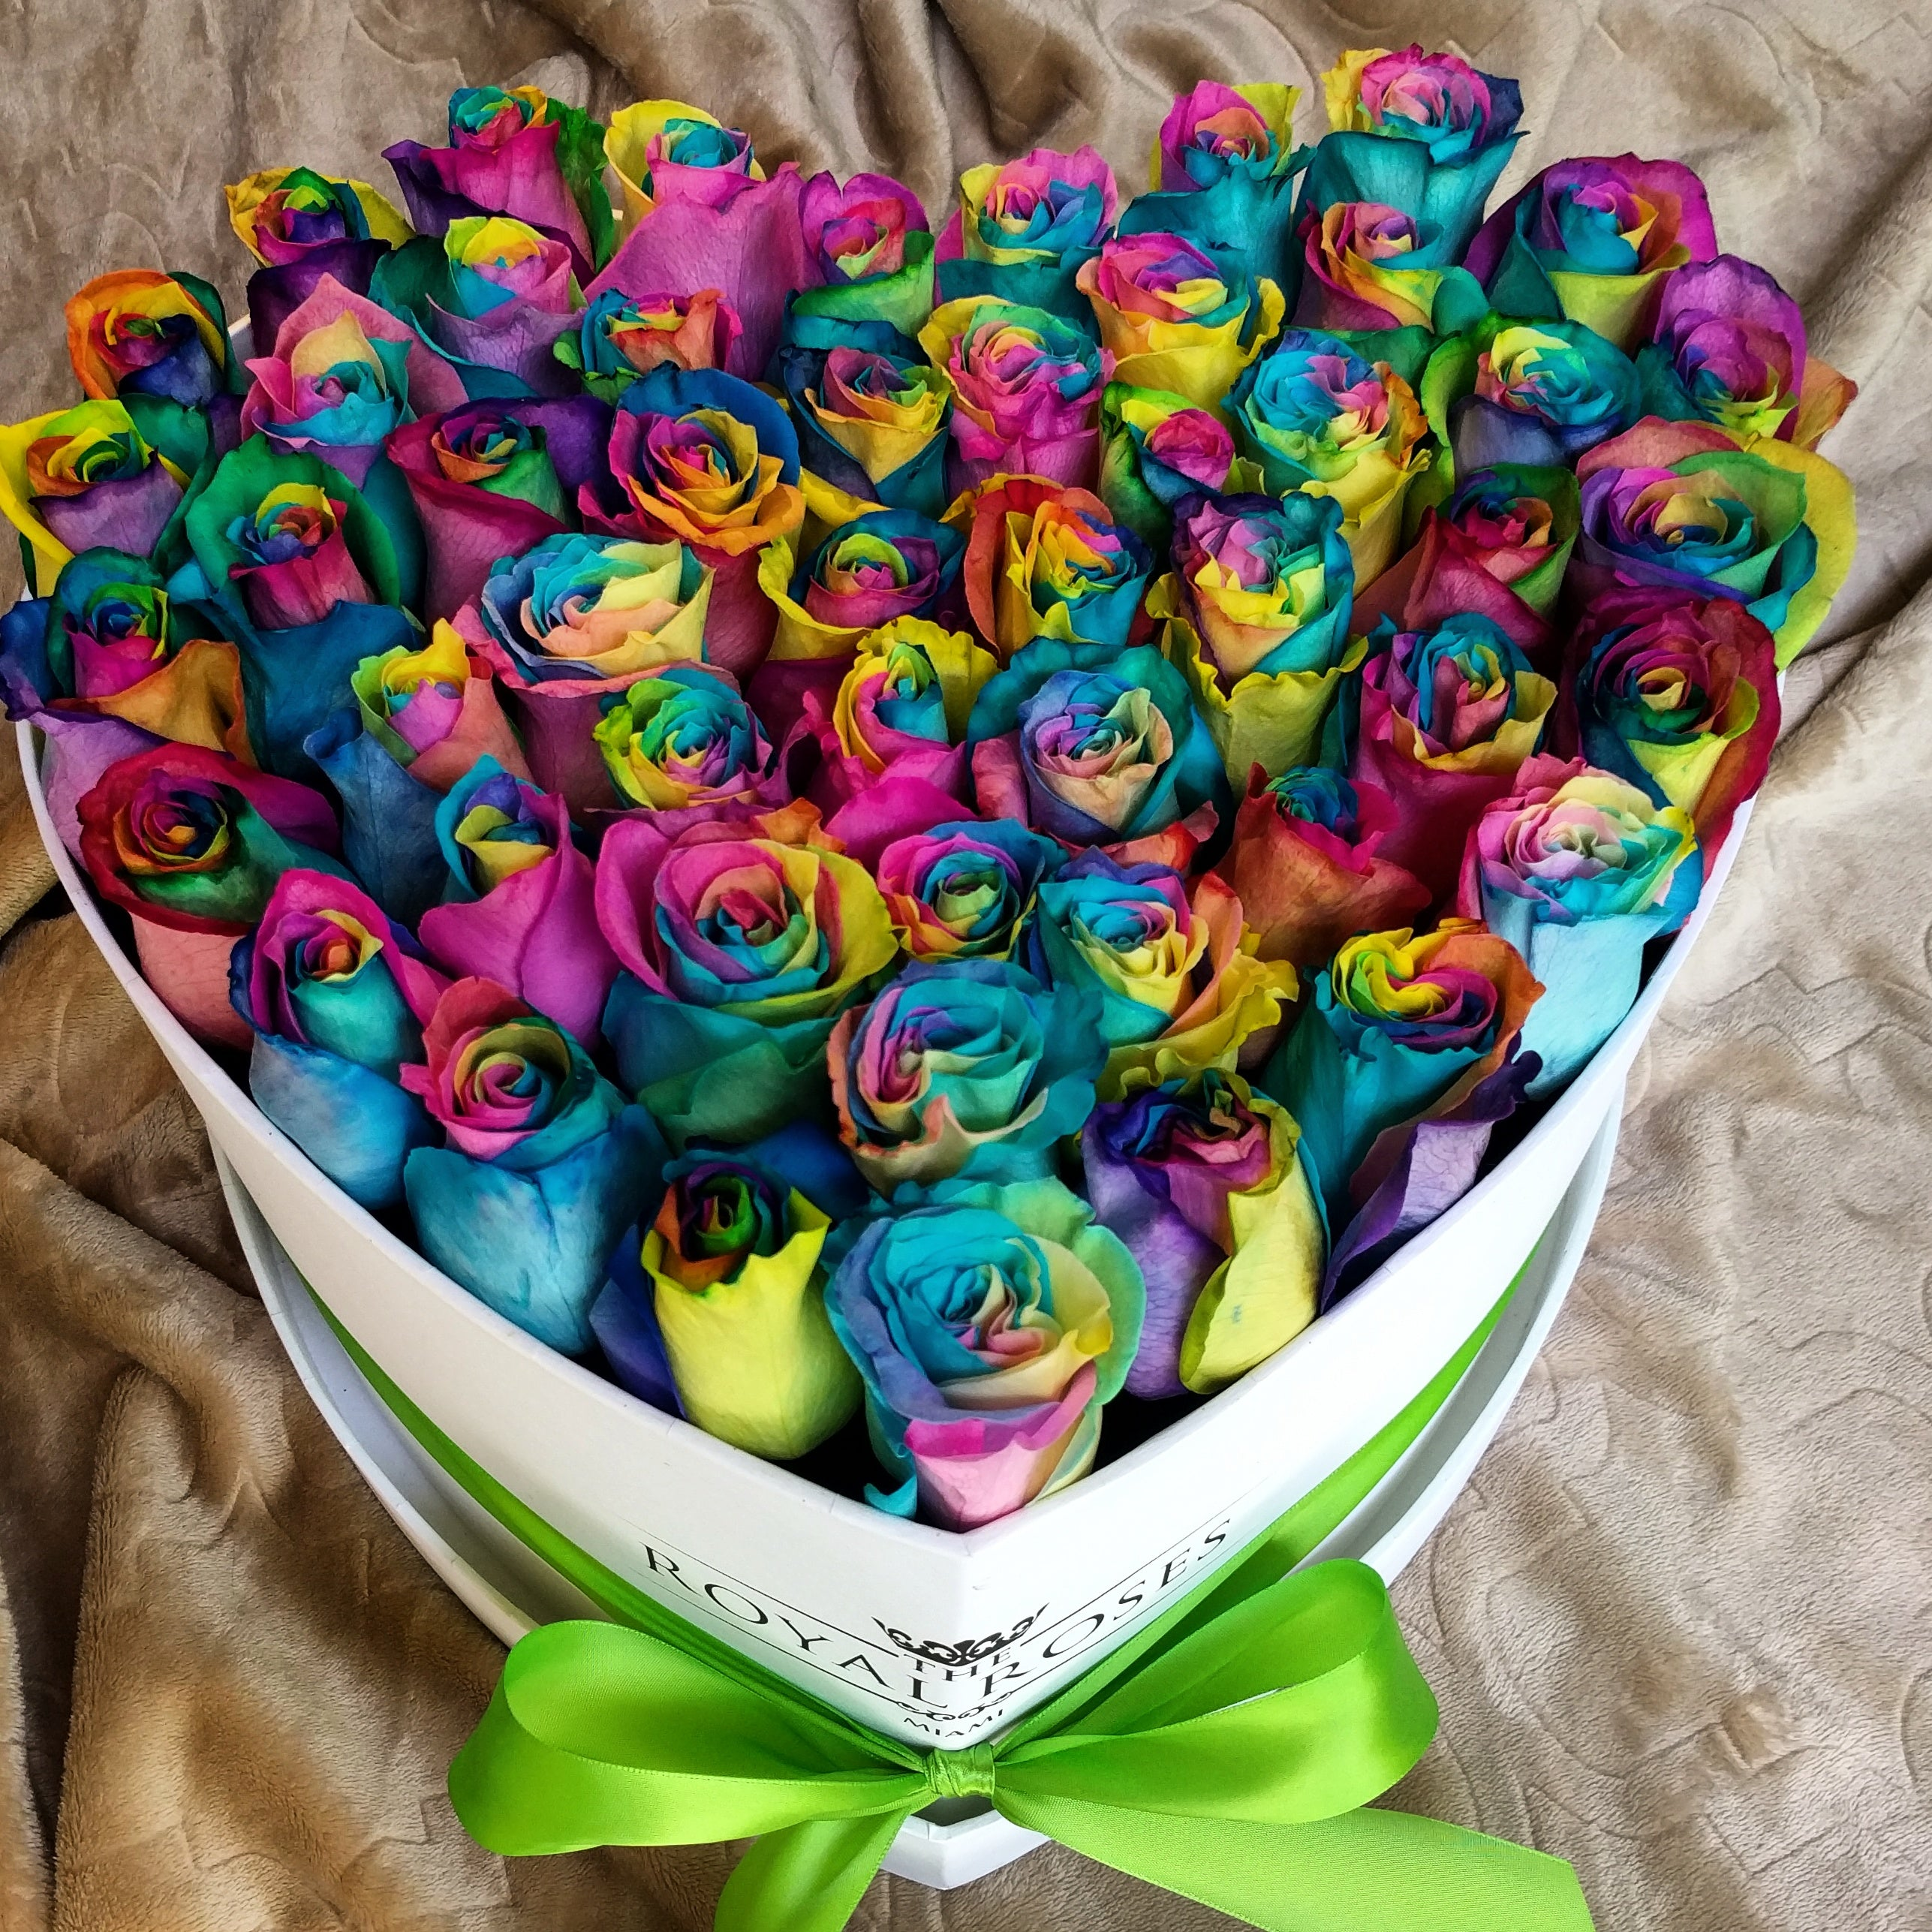 The Many Colors of Royal Roses